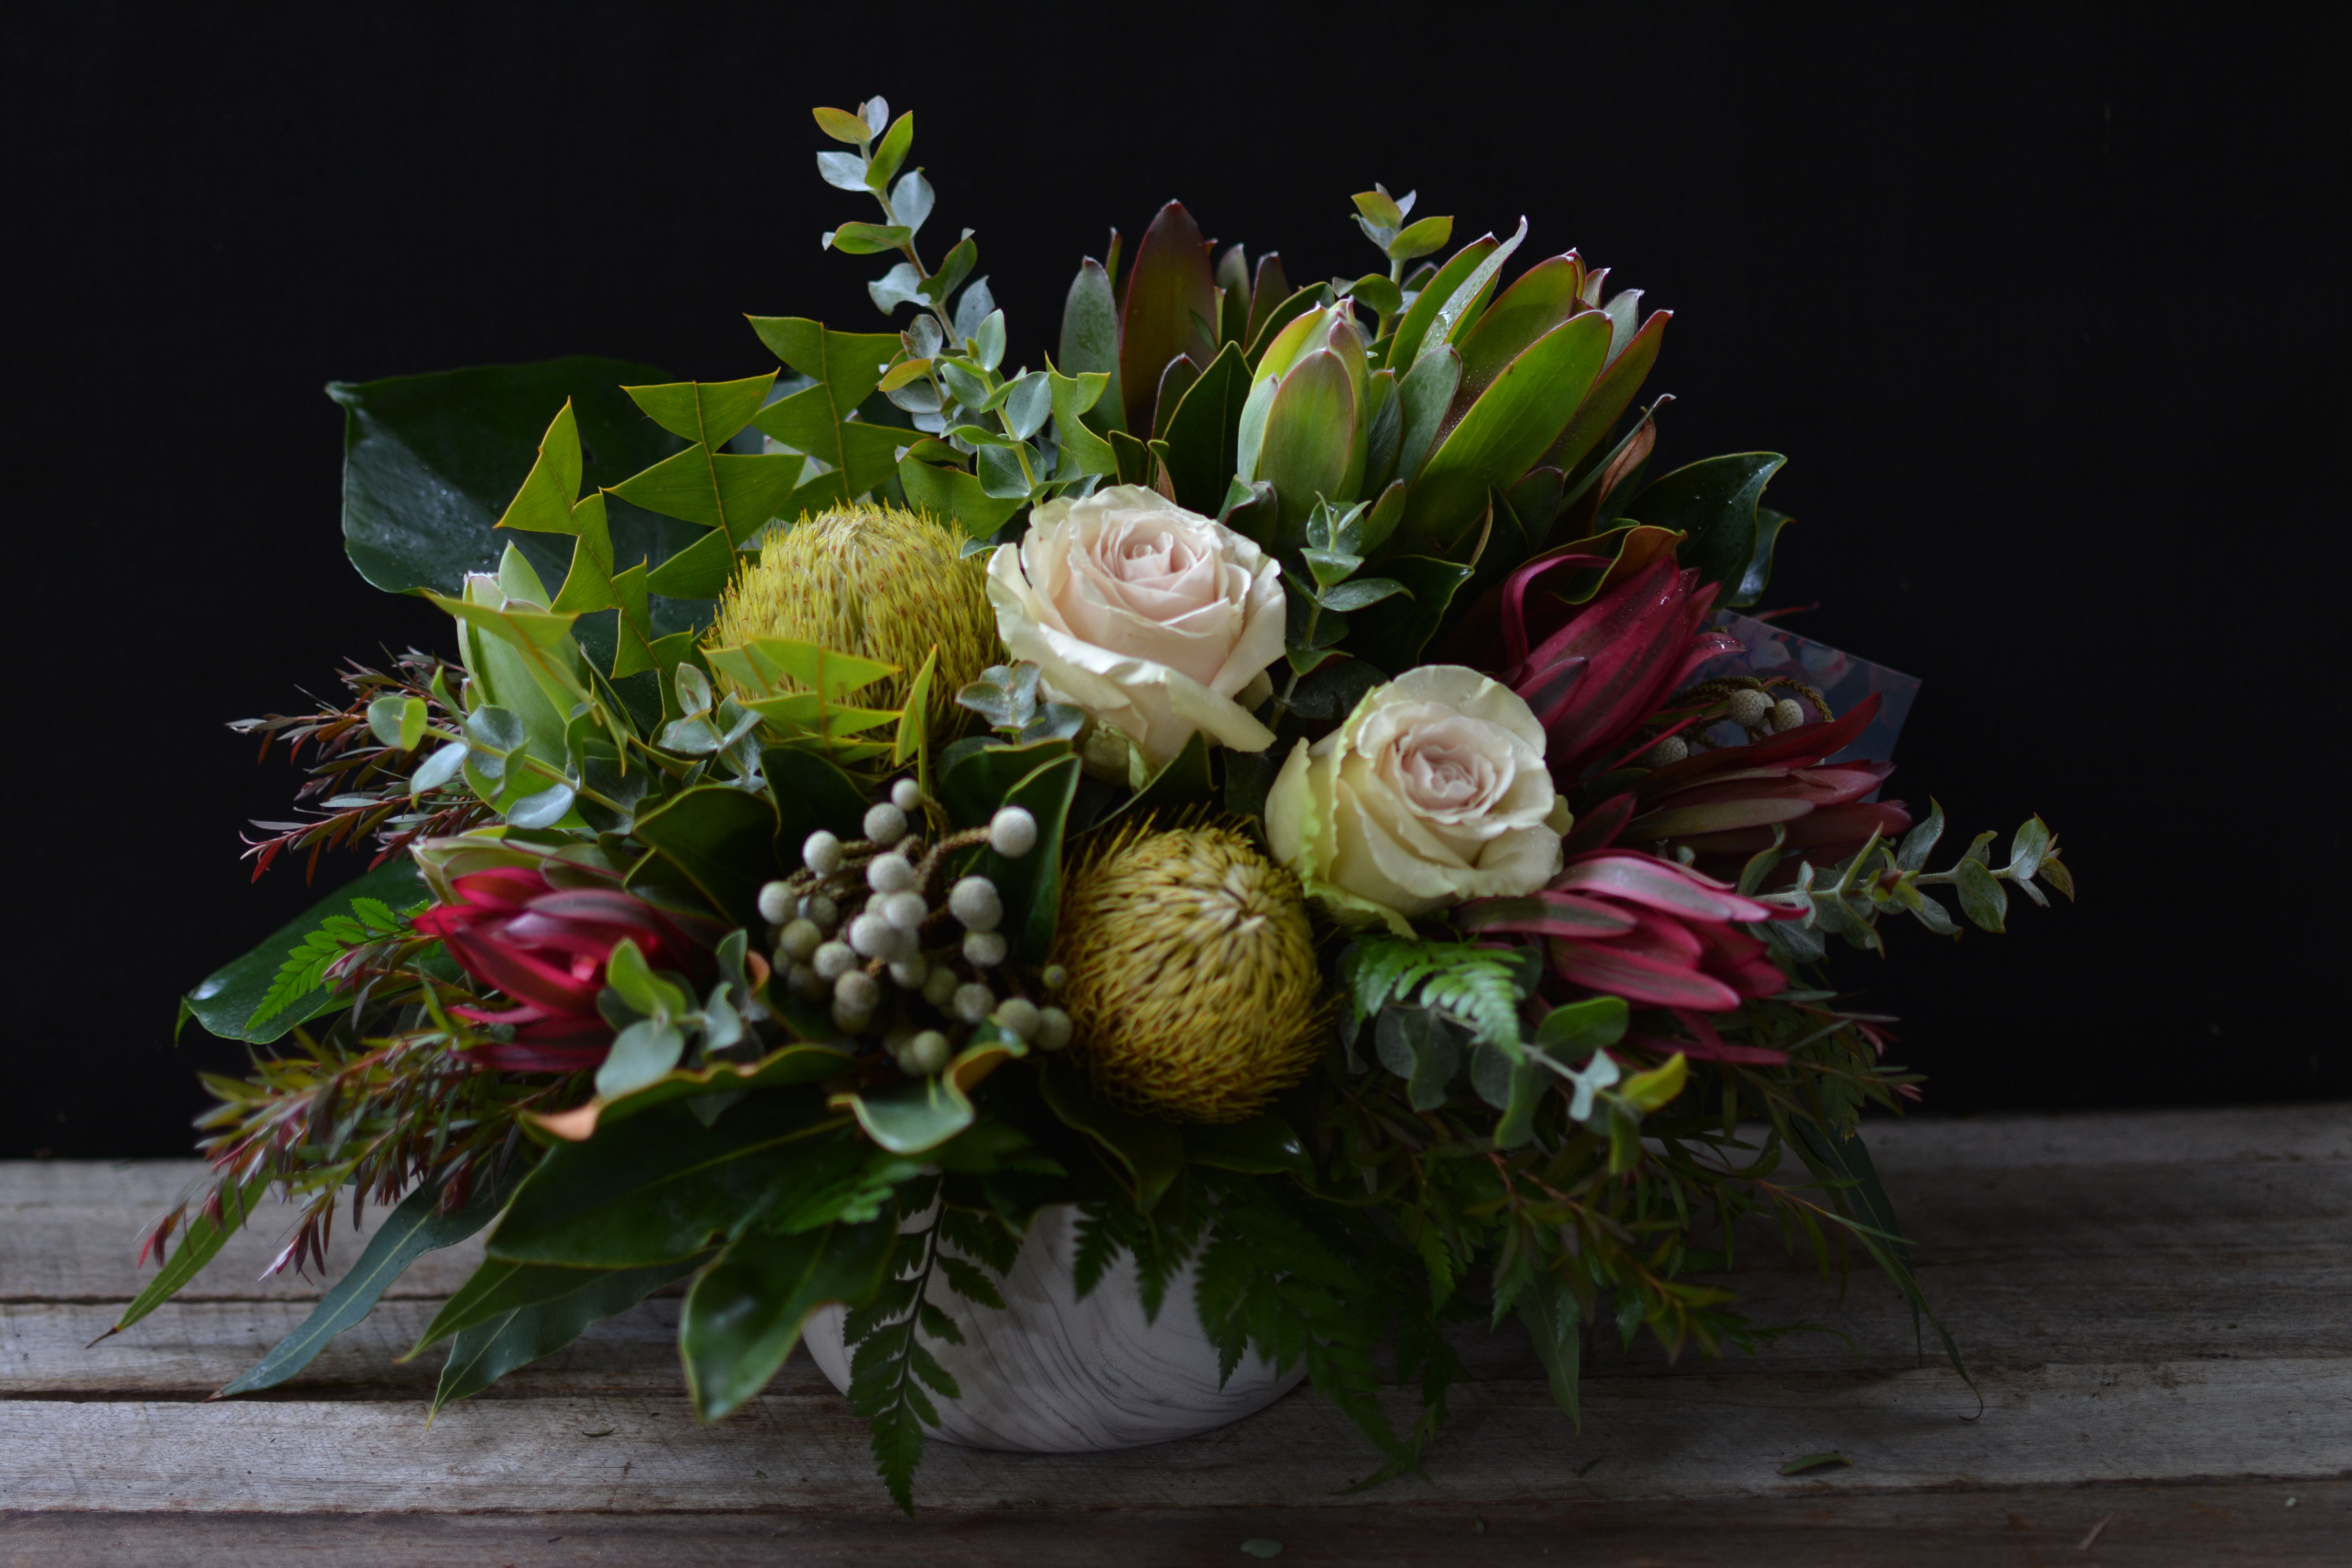 Marbled Pot With Banksia Baxteri Leucadendrons Brunii And Pompeii Roses Nativeflowers Nativ Flower Delivery Australian Native Flowers Flower Arrangements